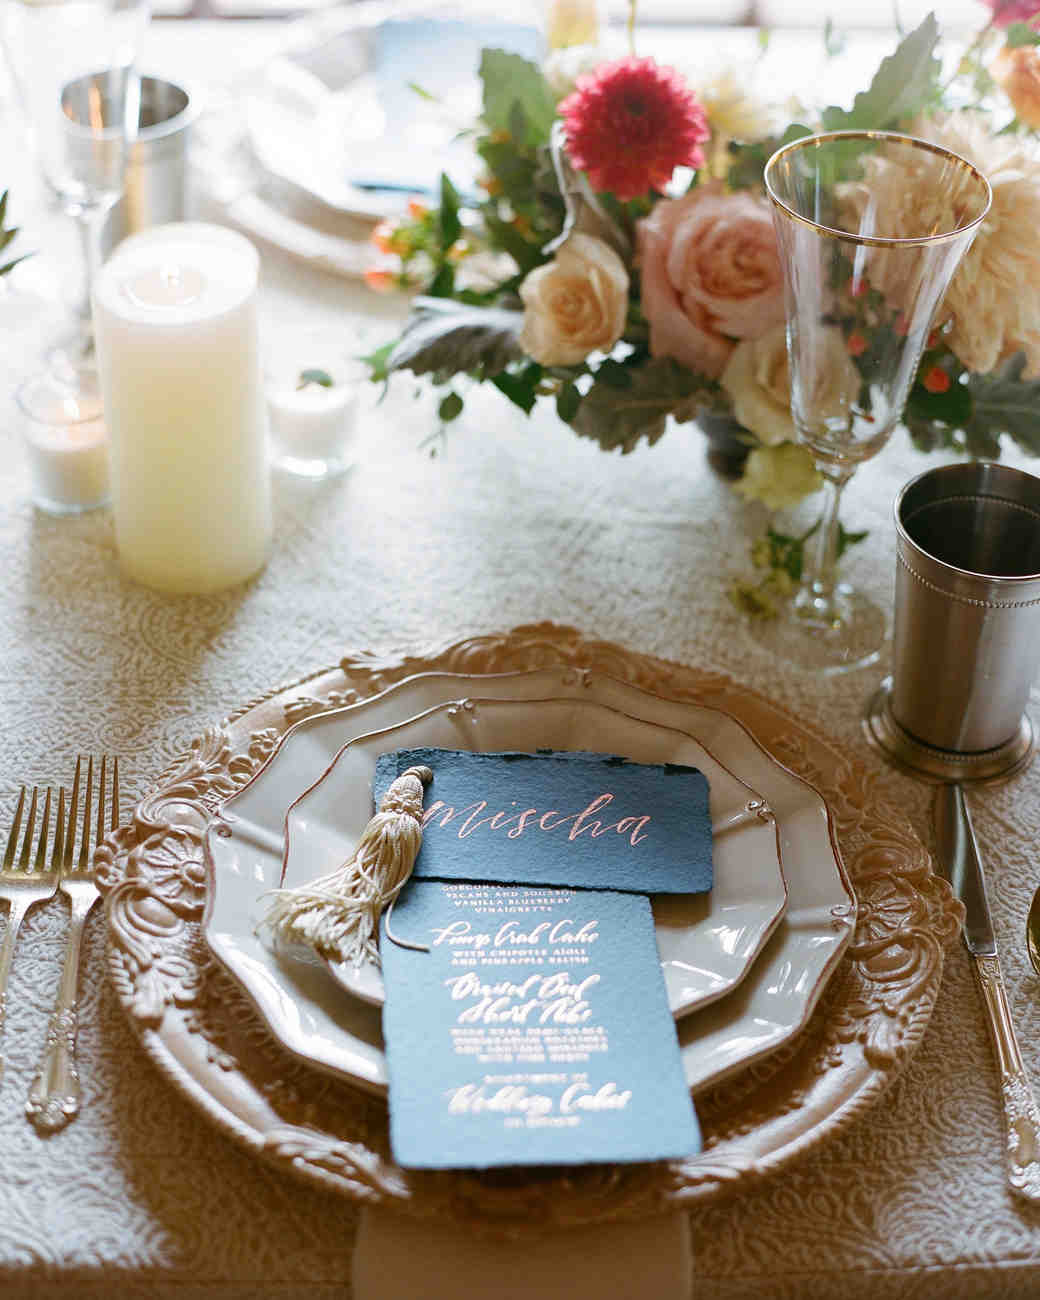 jessika william wedding placesetting